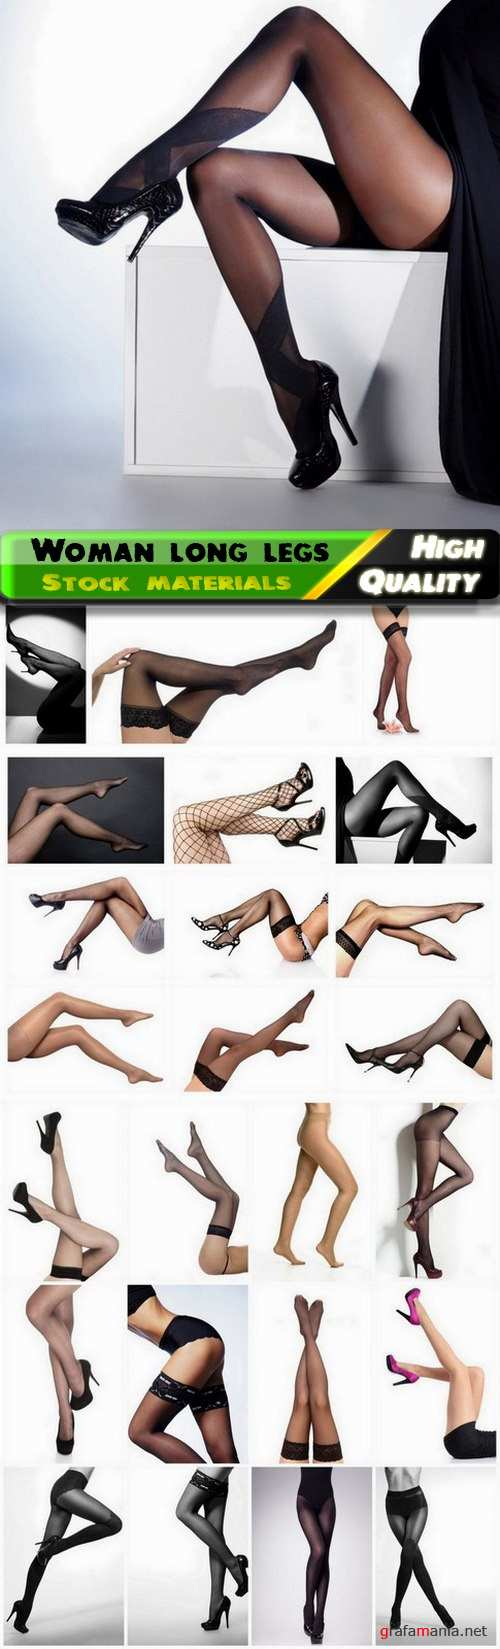 Woman and girl long legs stockings and tights high heels - 25 HQ Jpg